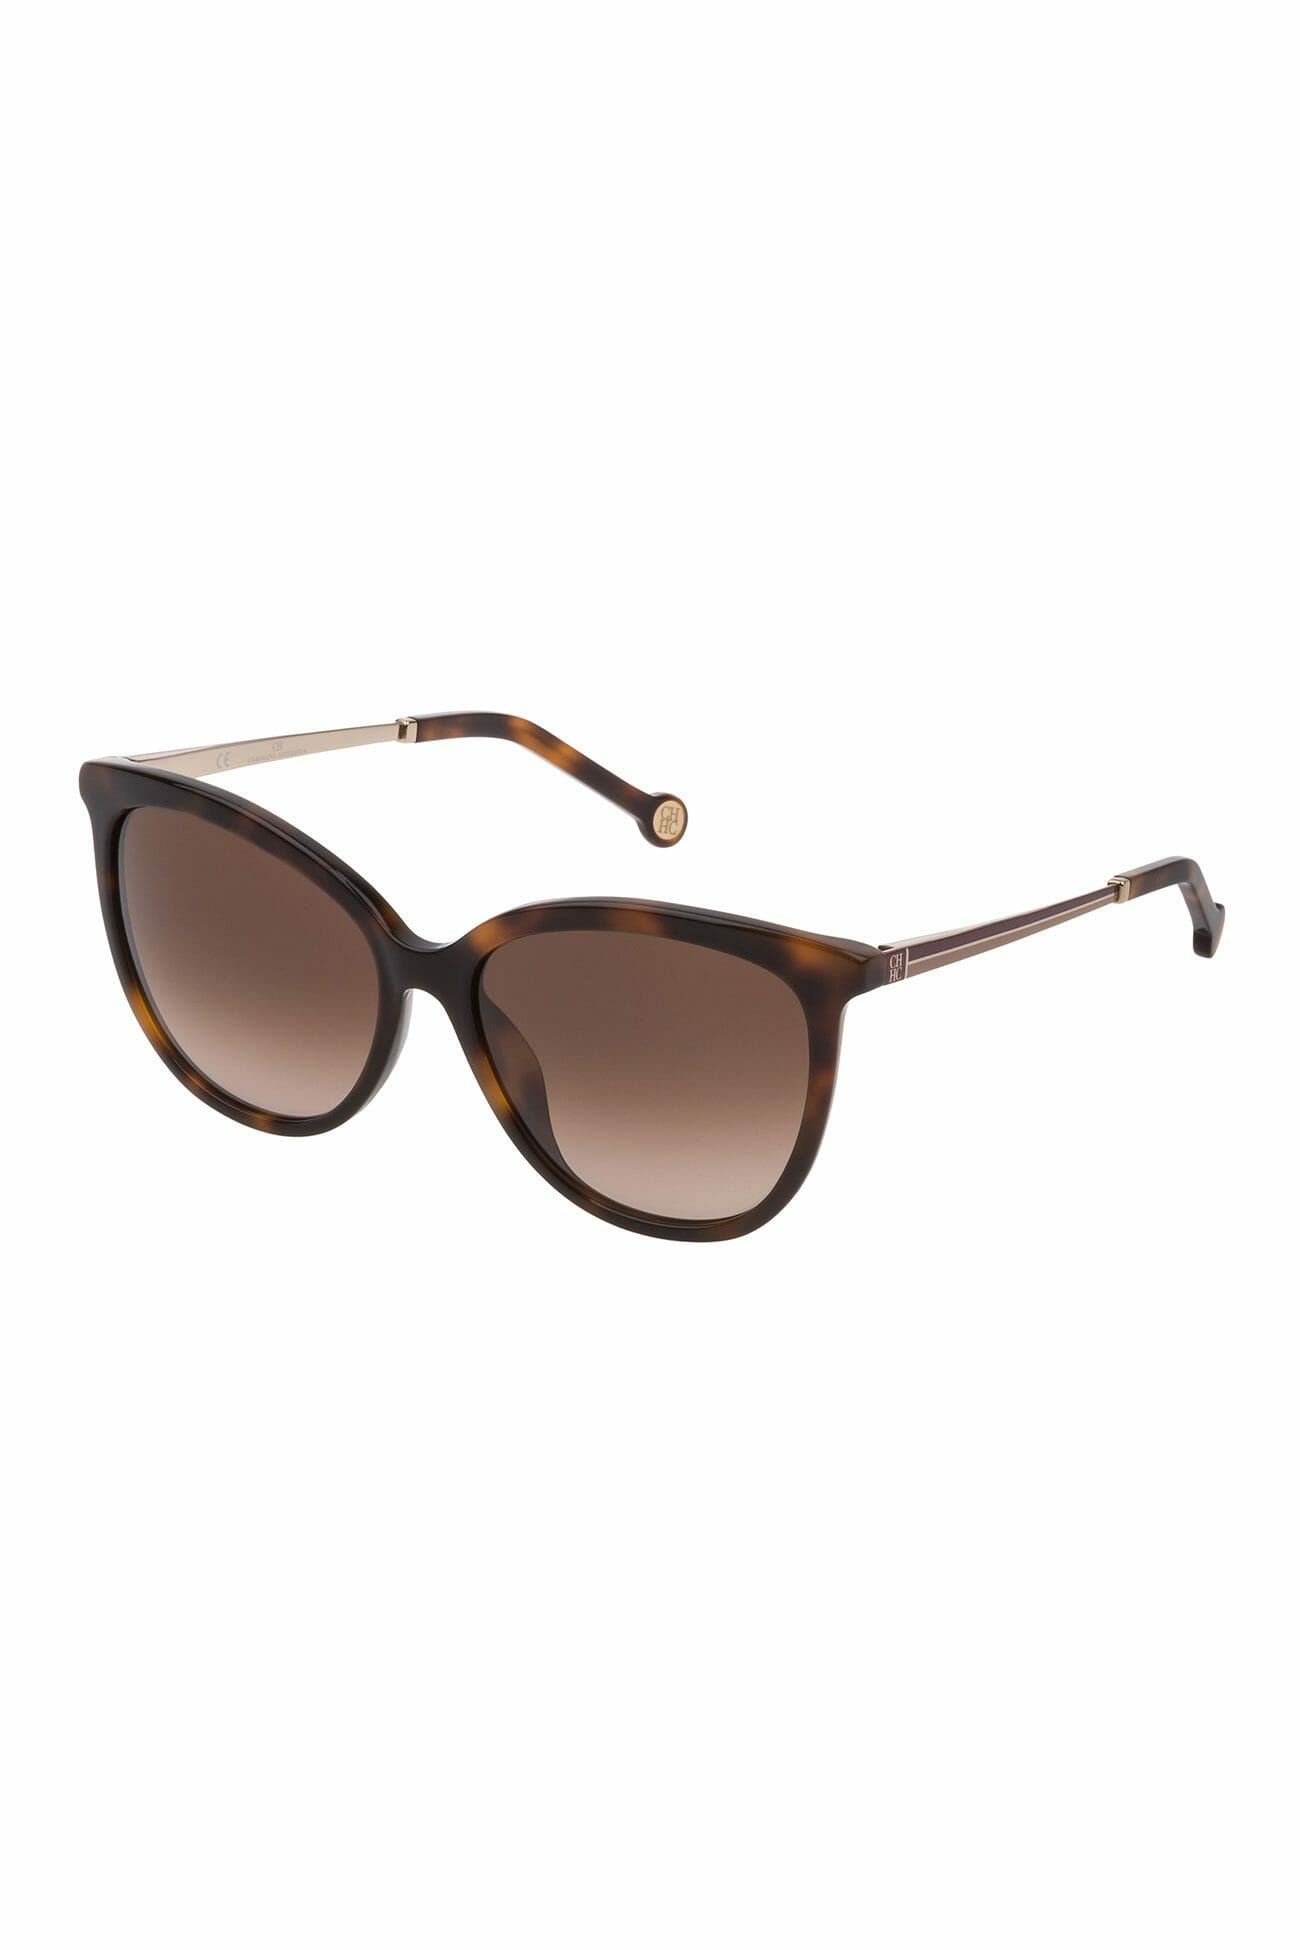 CH-Carolina-Herrera-Eyewear-Women-Sunglasses